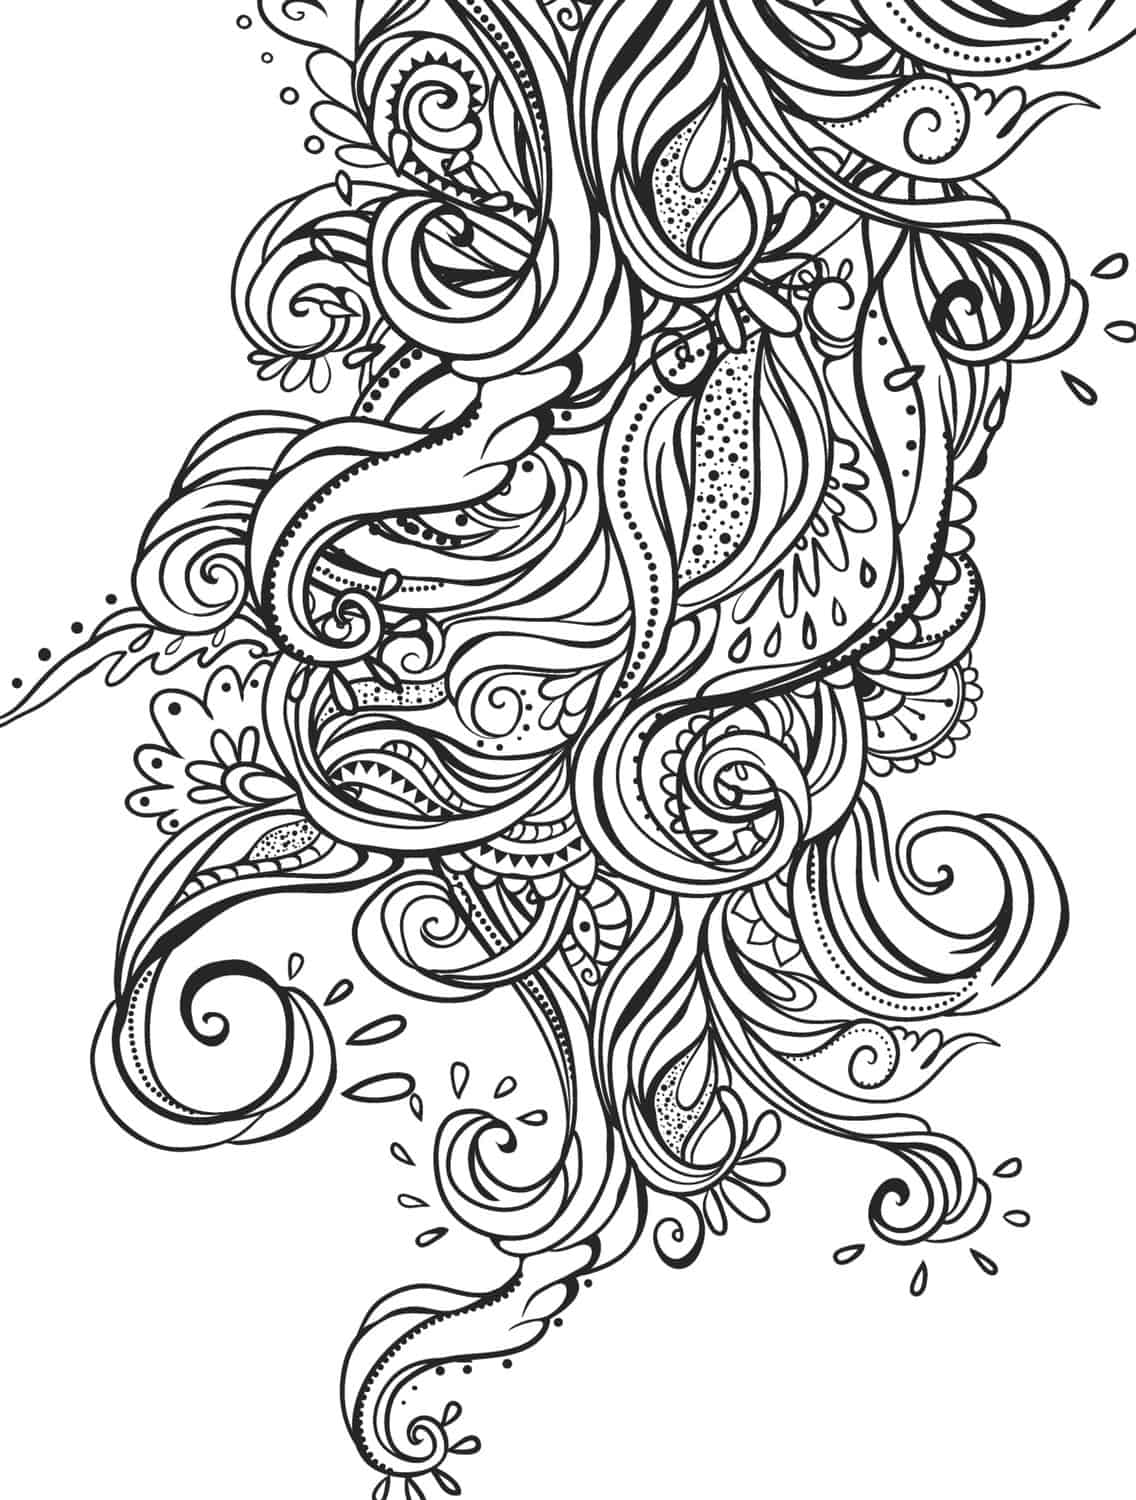 15 CRAZY Busy Coloring Pages for Adults - Page 5 of 16 - Nerdy Mamma